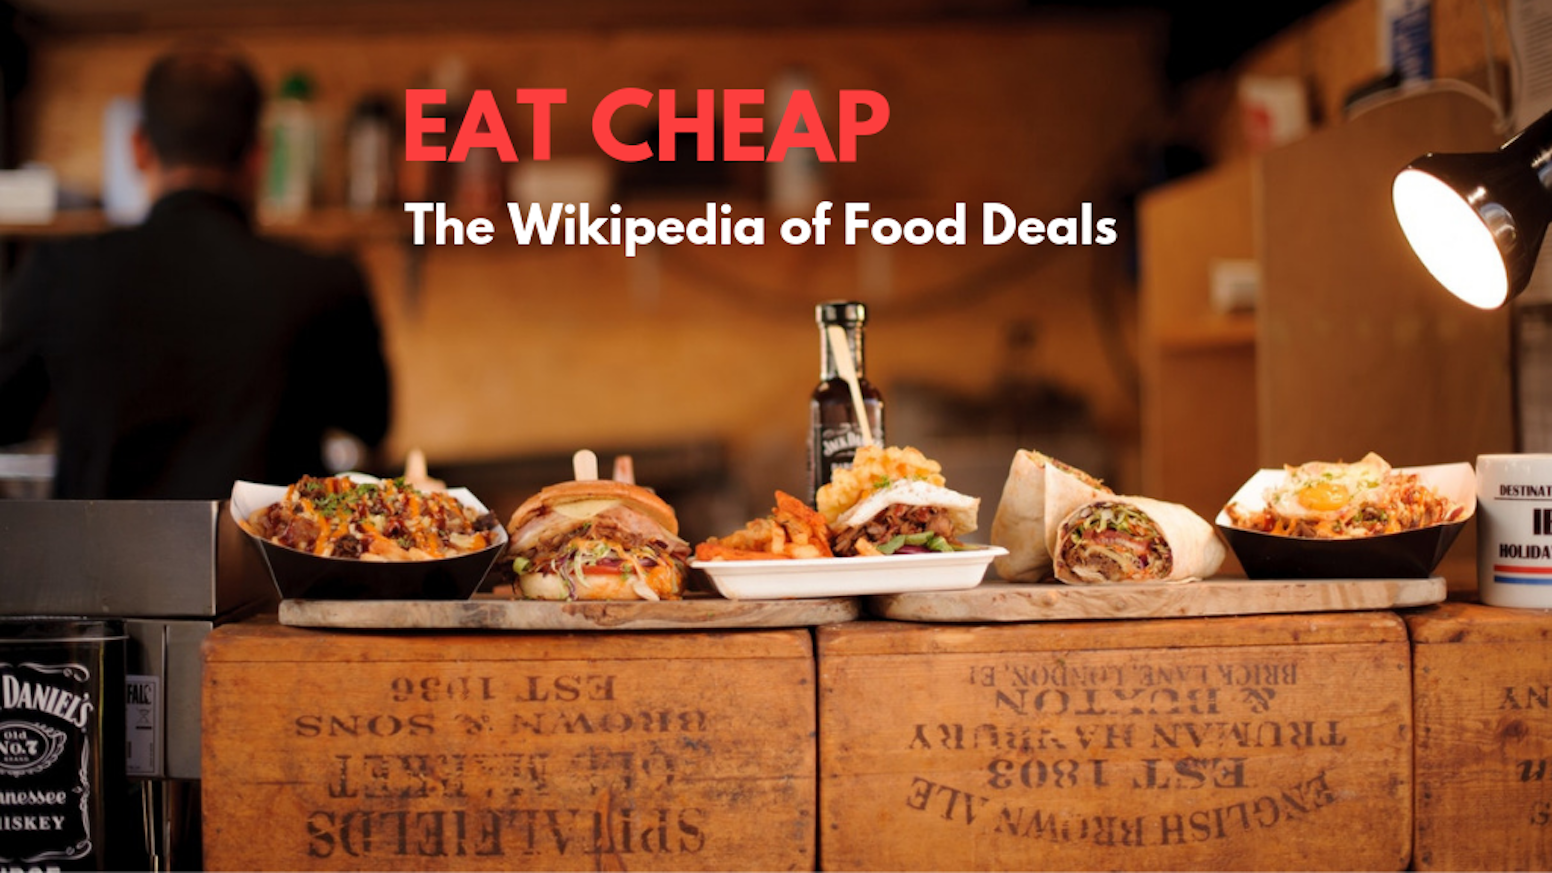 The Wikipedia of Food Deals